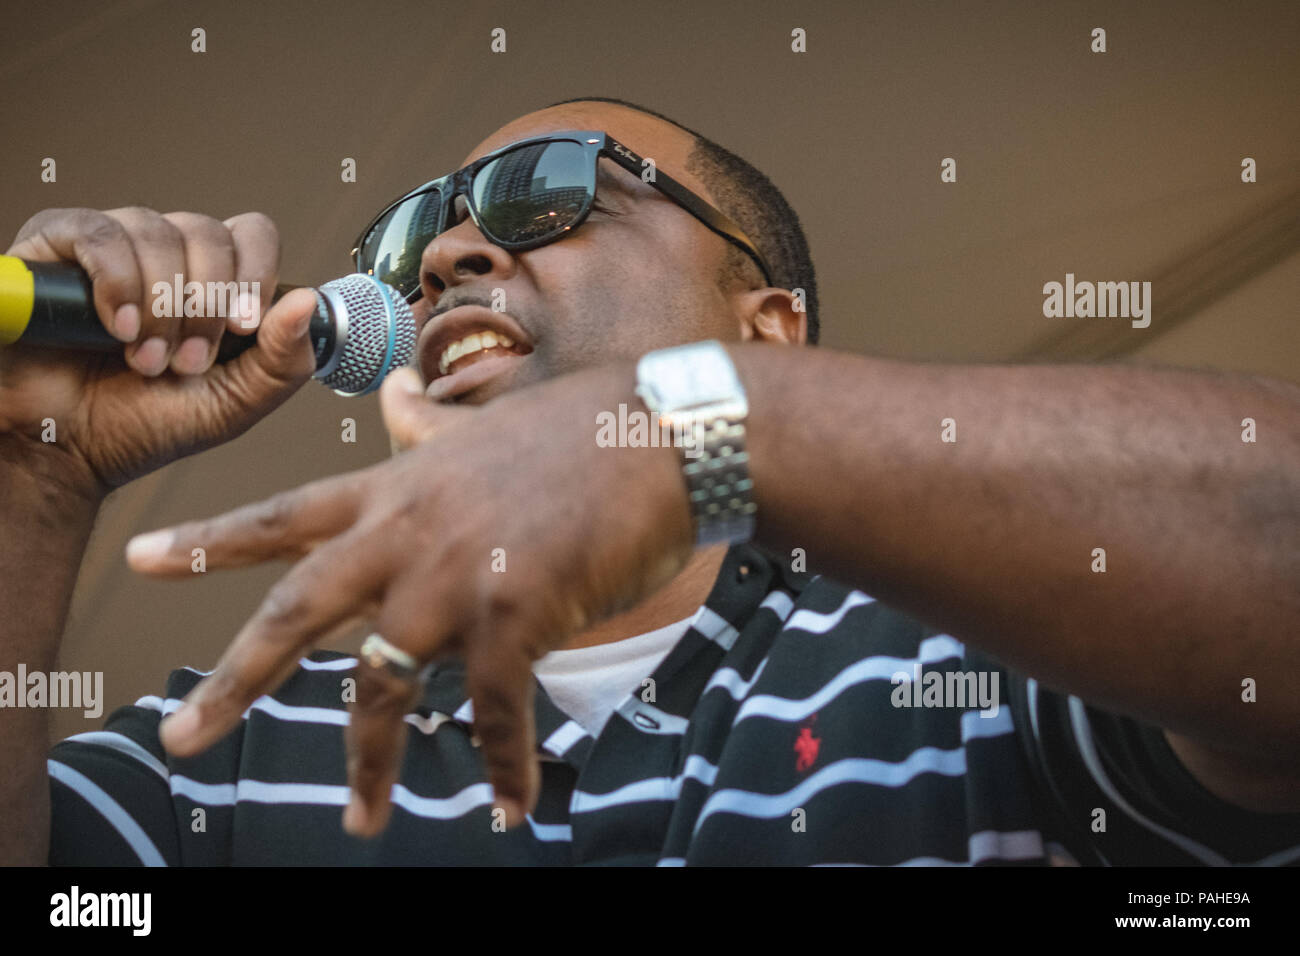 Bruse Wane along with DJ Ether opened up for EPMD on July 19,2018 at the NJ PAC - Stock Image